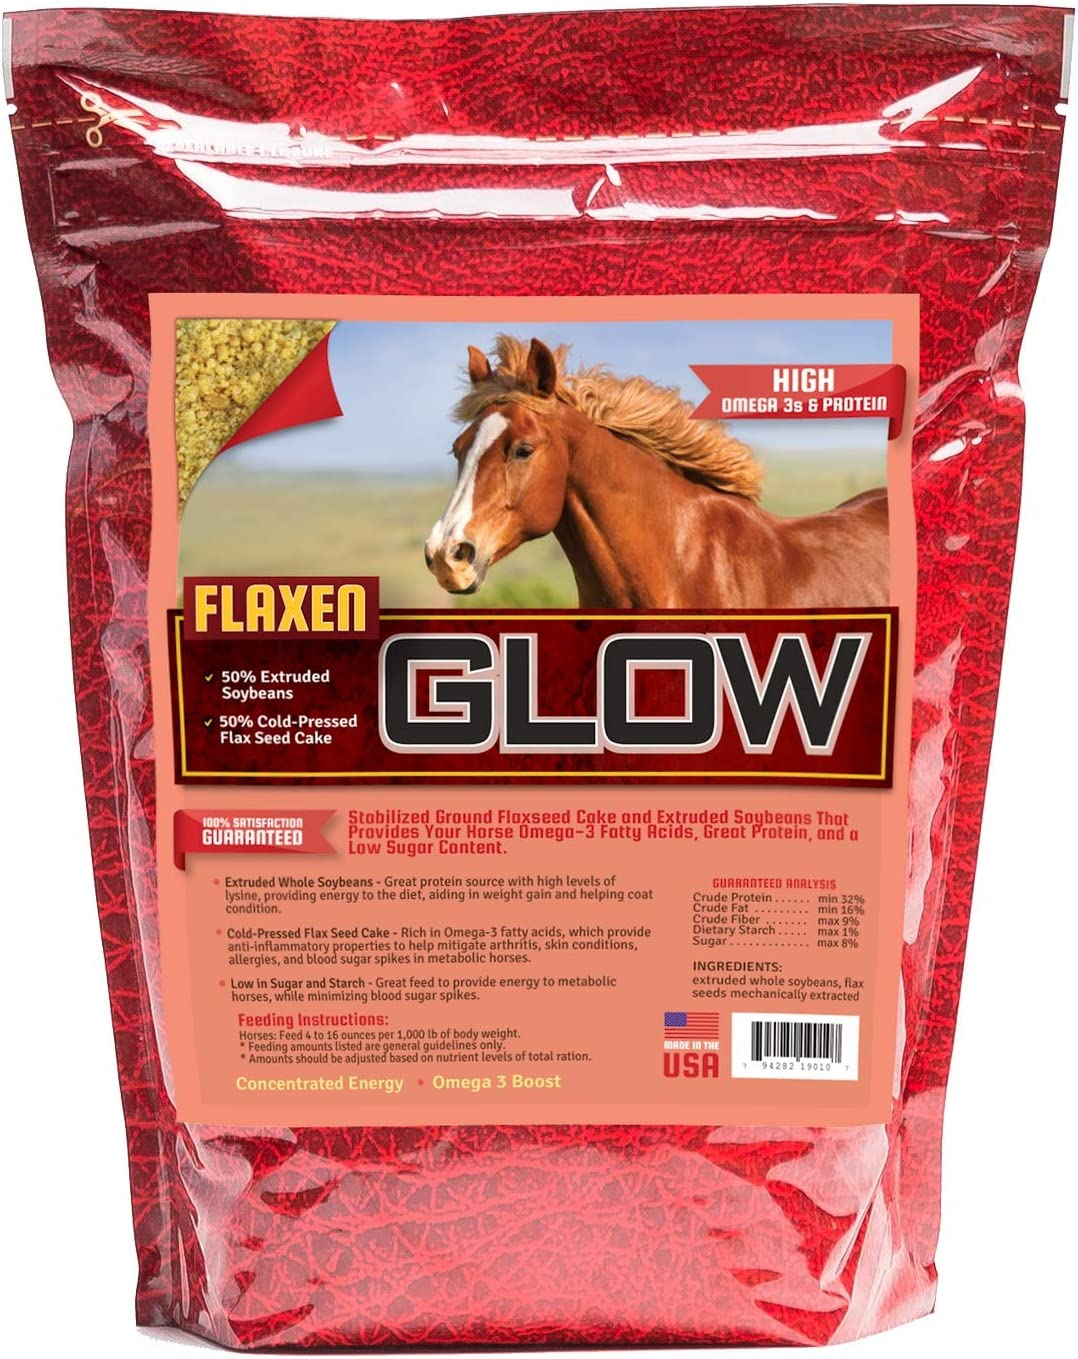 Horse Guard Glow 10Lb. 50% Extruded Soy 50% Flax Cake